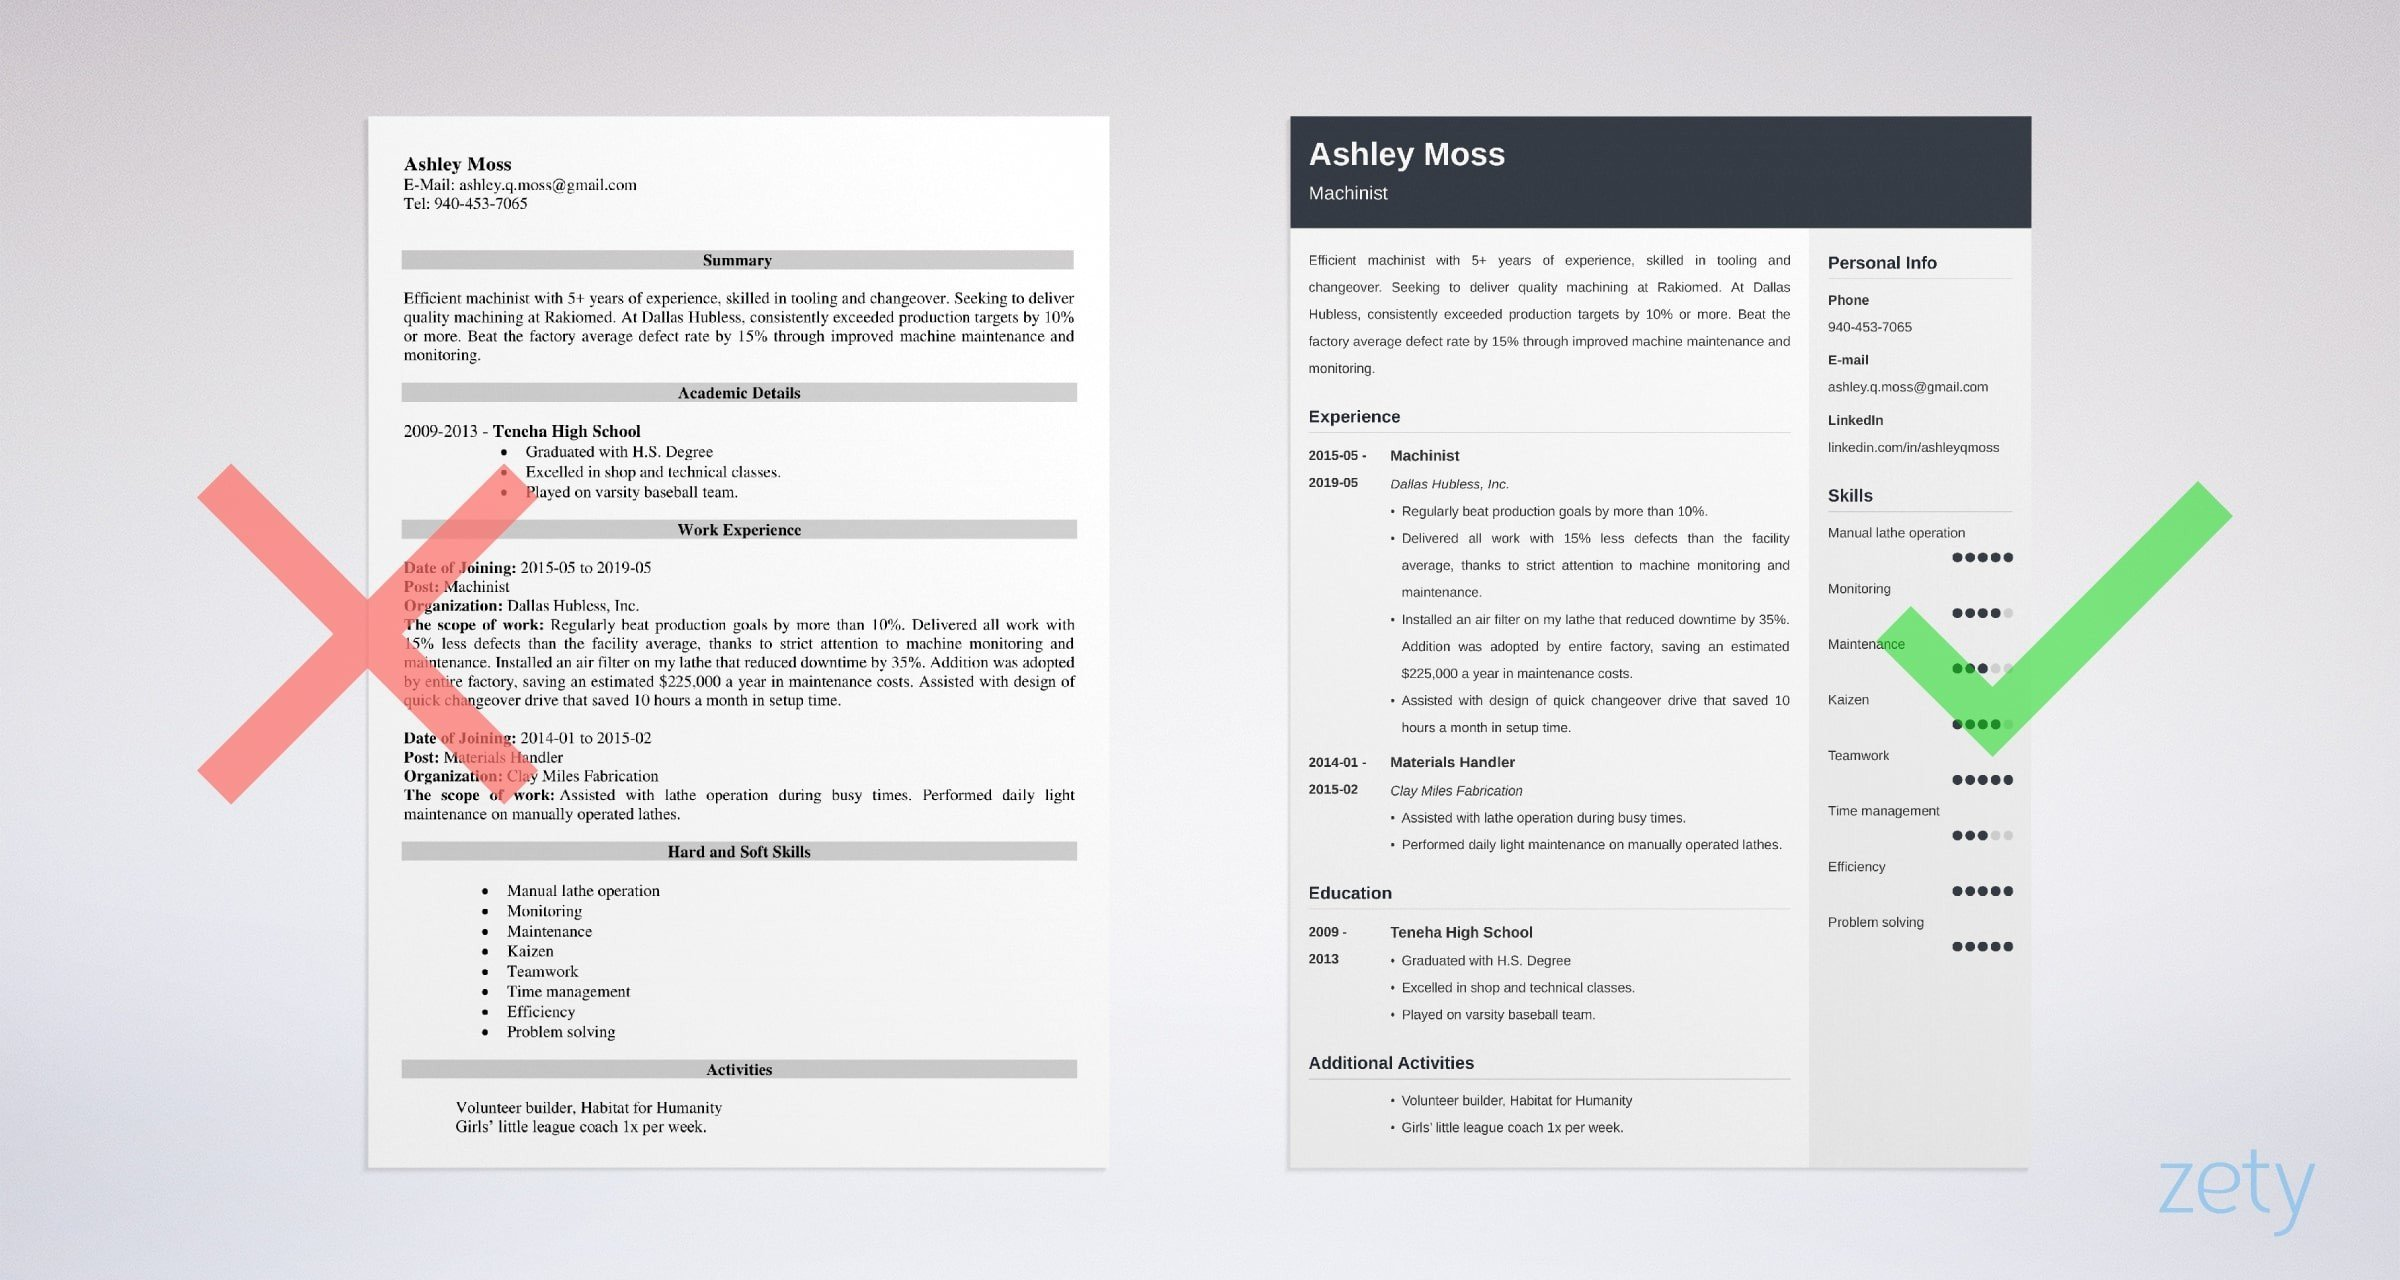 Machinist resume samples cheap analysis essay editing for hire ca